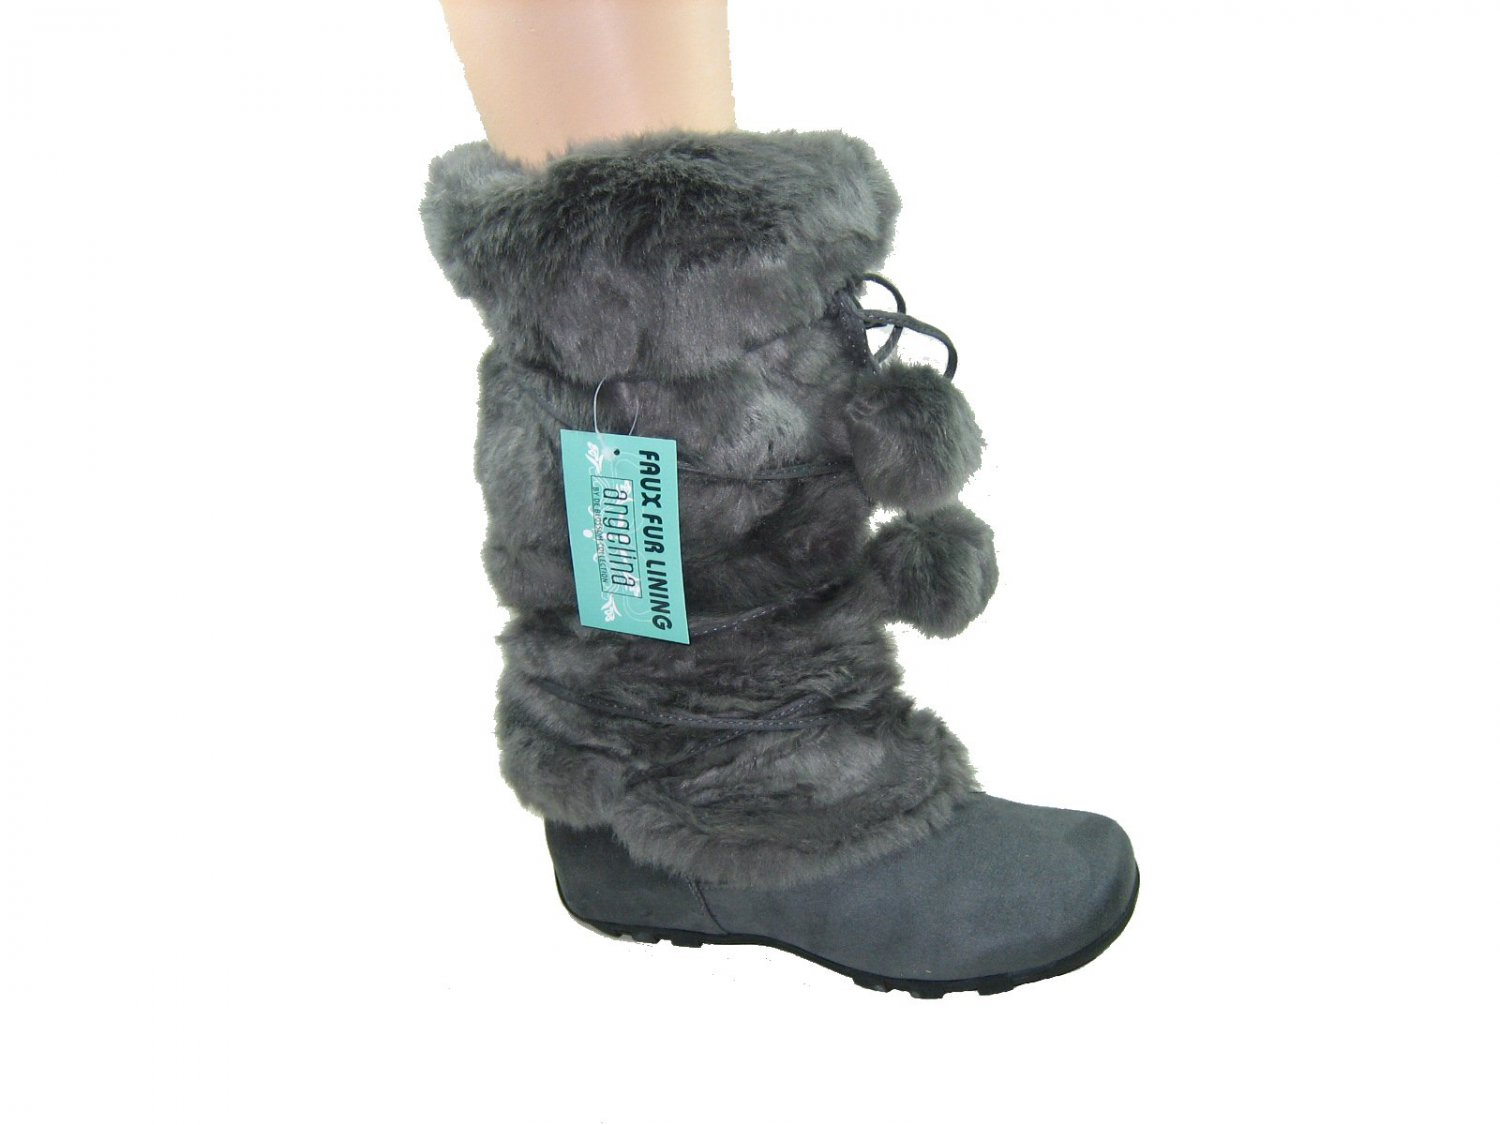 Blossom women's fashion gray faux suede mid-calf faux fur pom pom winter boots size 6.5